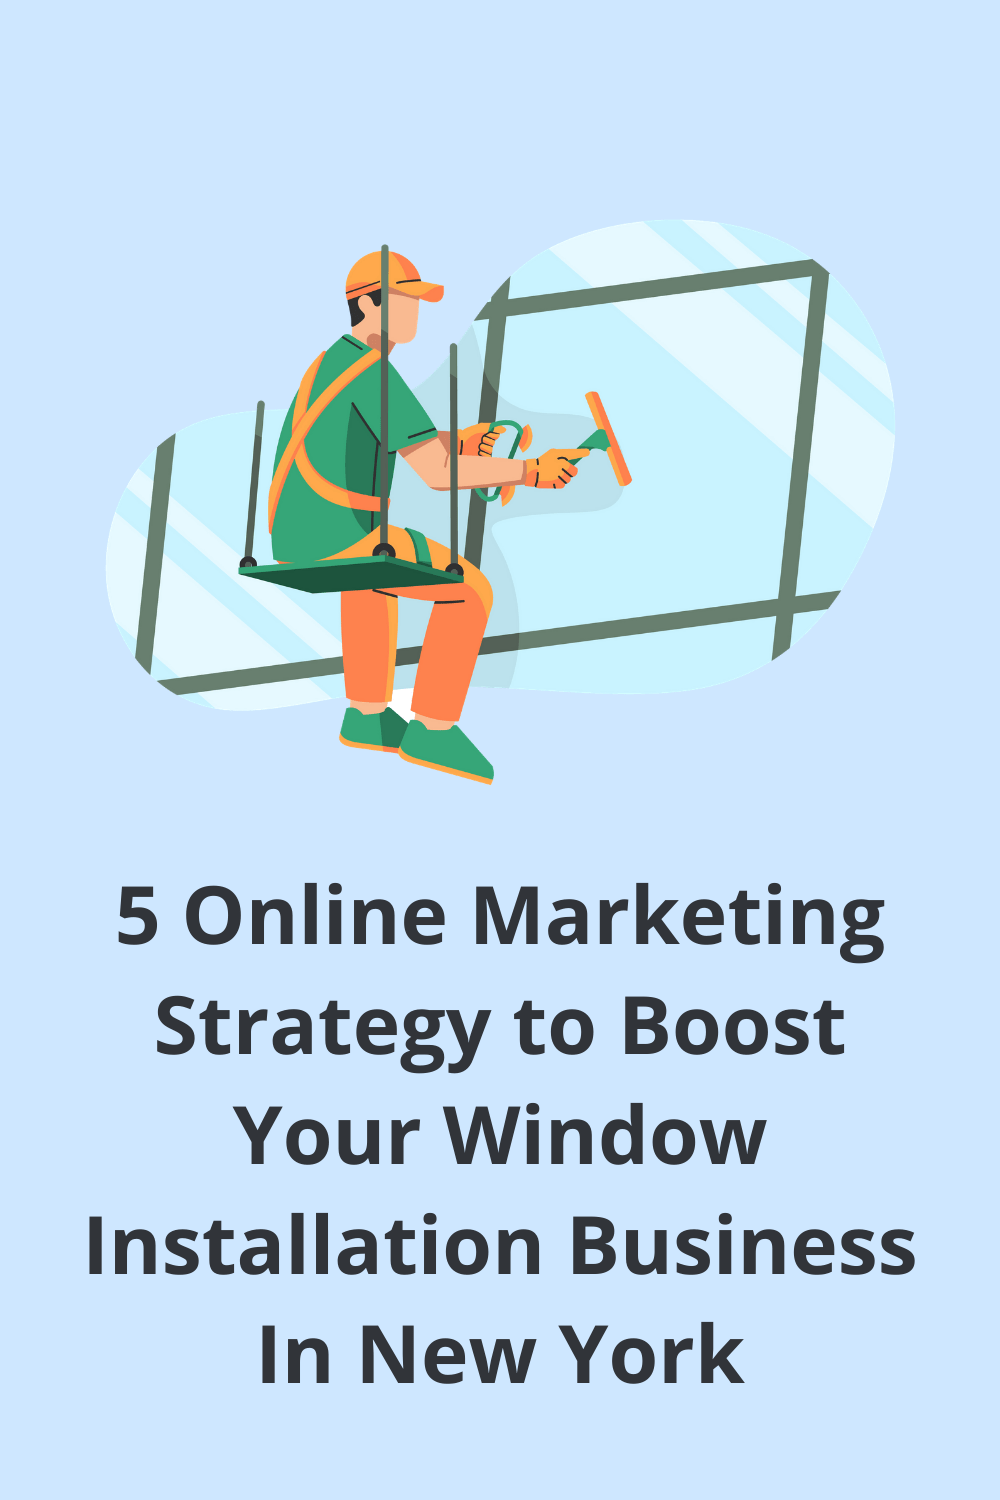 The internet has considerably revolutionized the marketing environment, particularly when promoting the windows installation business. The Online Marketing Strategies below can surely boost your business. via @scopedesign